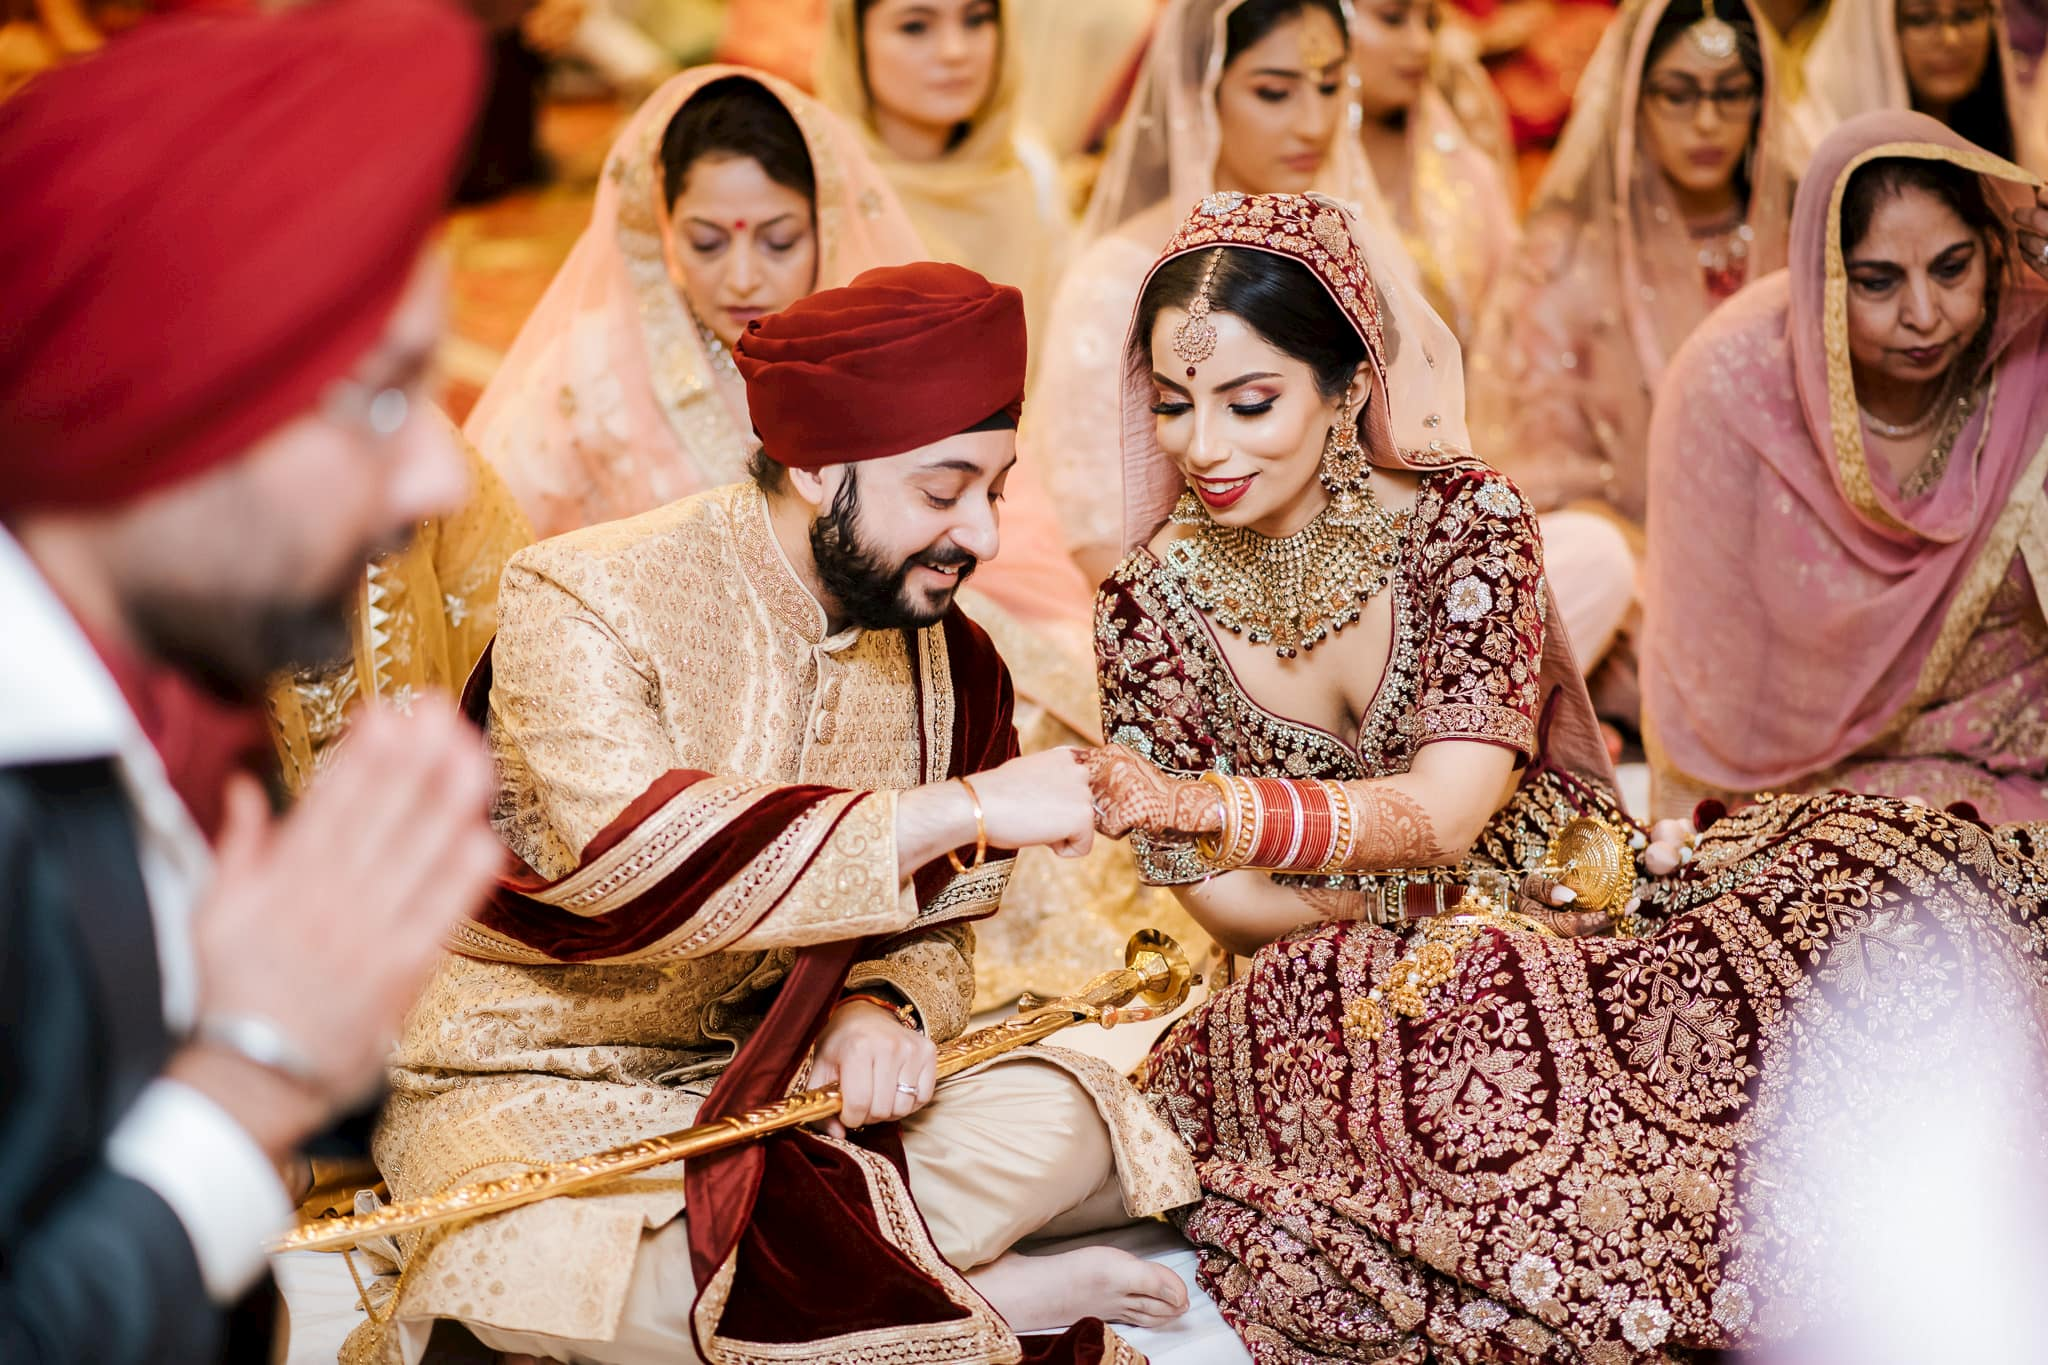 Simran and Anmol's vibrant and modern Sikh wedding celebration in Melbourne. Wedding photography was captured by Indian wedding photographer, Bhargav Boppa.